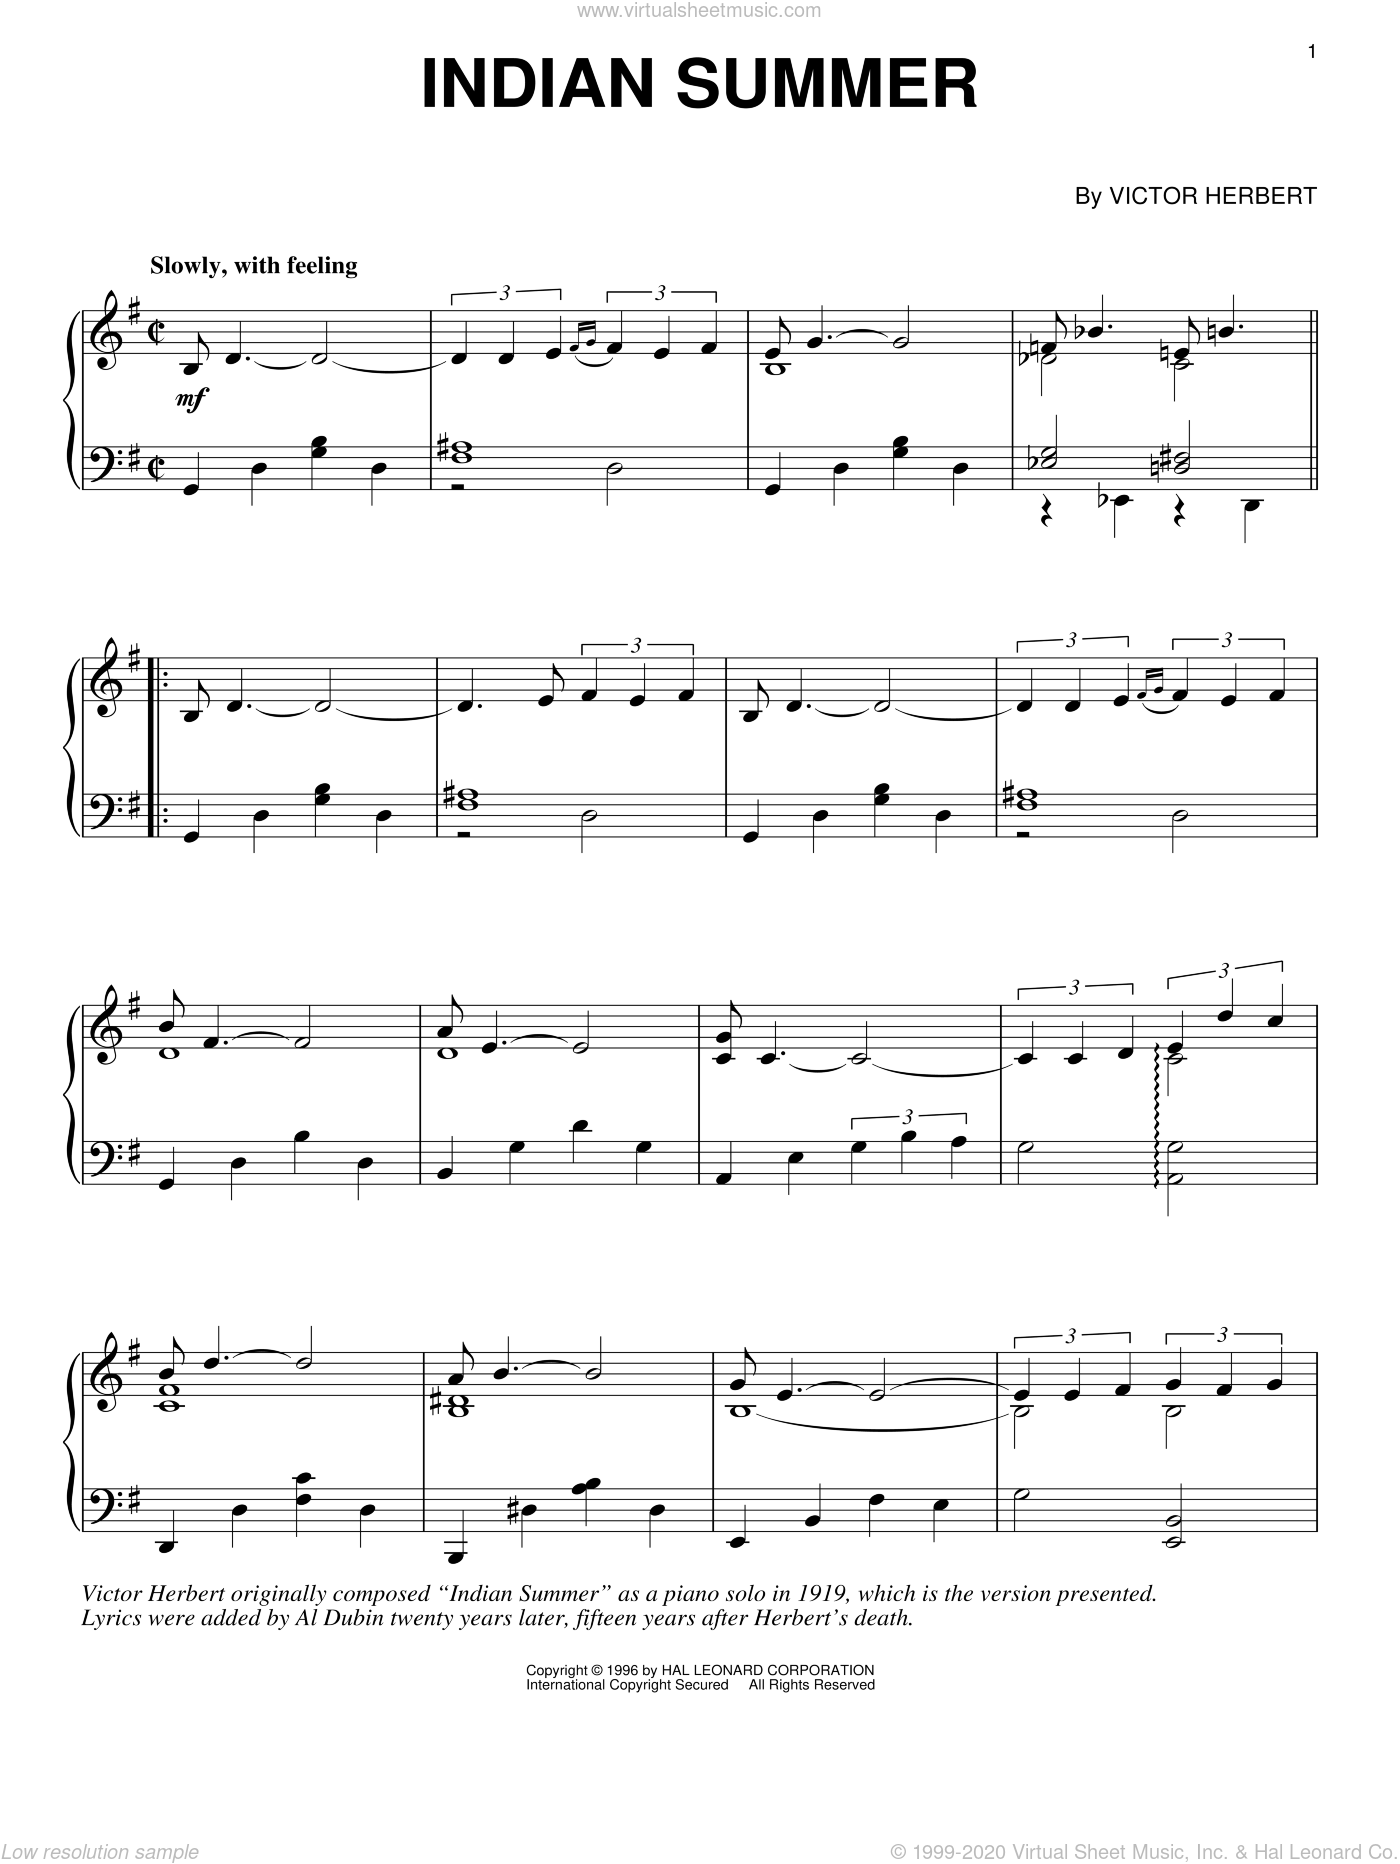 Indian Summer sheet music for piano solo by Victor Herbert. Score Image Preview.